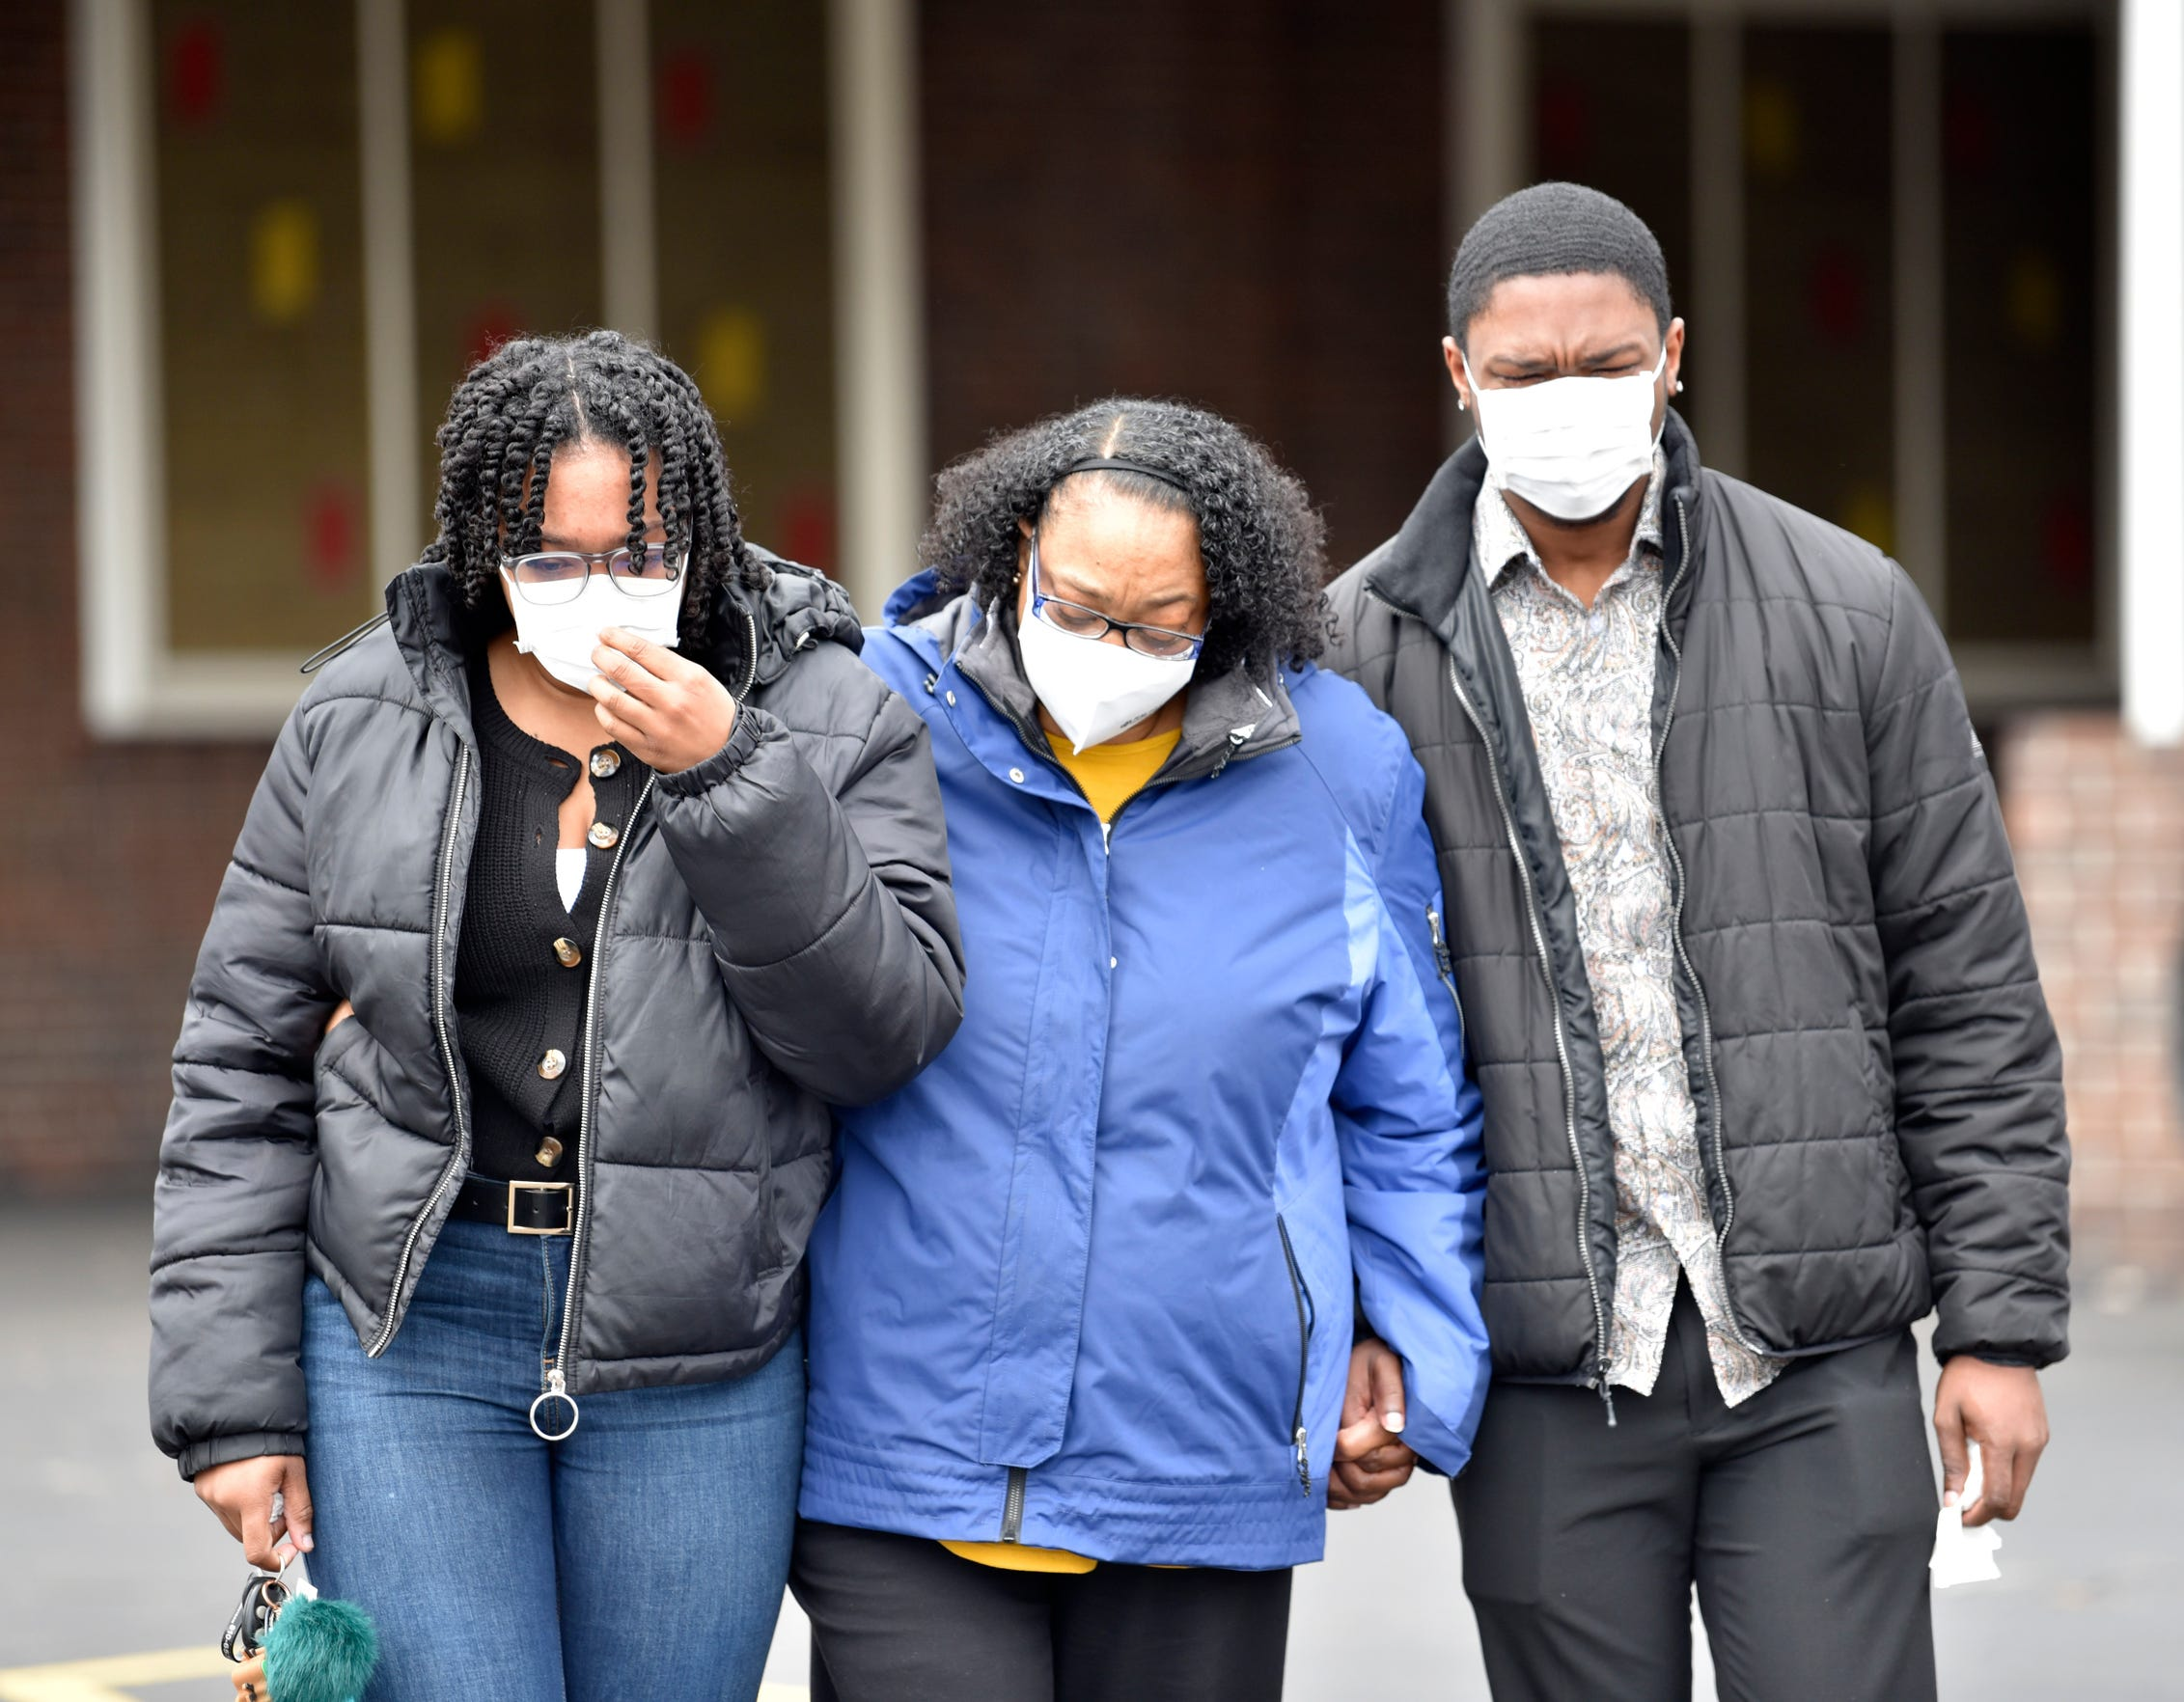 Tonya Brown, center, and her children Rochelle Pompey and Ronnie Pompey Jr., all of Flint, cry as they leave the funeral home. Brown is Freddie Lee Brown Jr.'s sister.